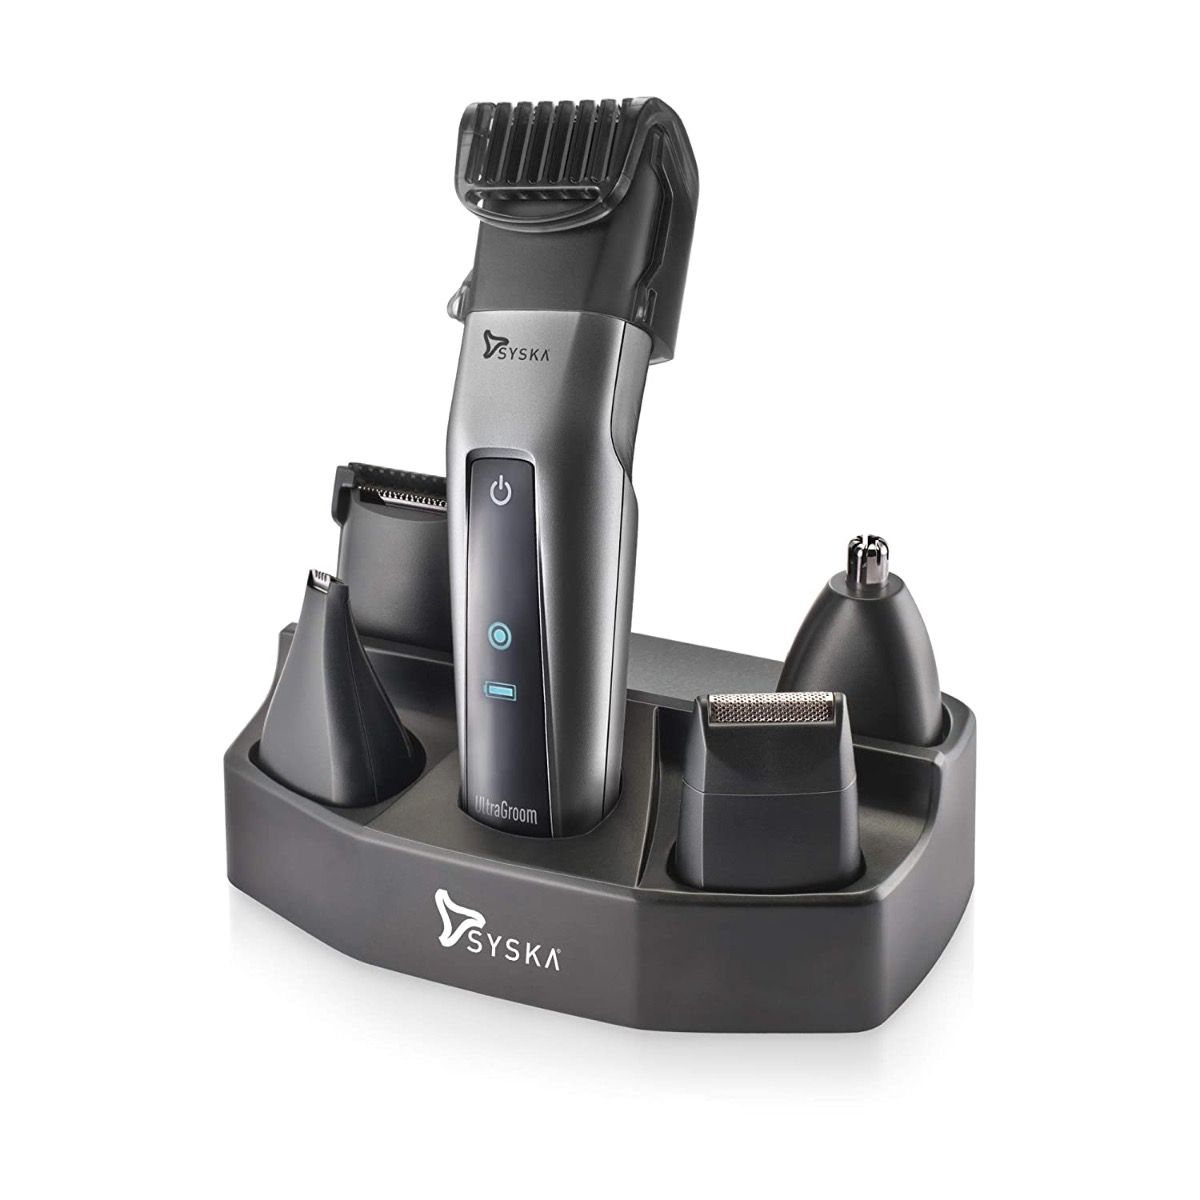 Syska UltraGroom ProStyling Kit HT3052K/02 Runtime: 50 min Trimmer for Men  (Silver, Black)